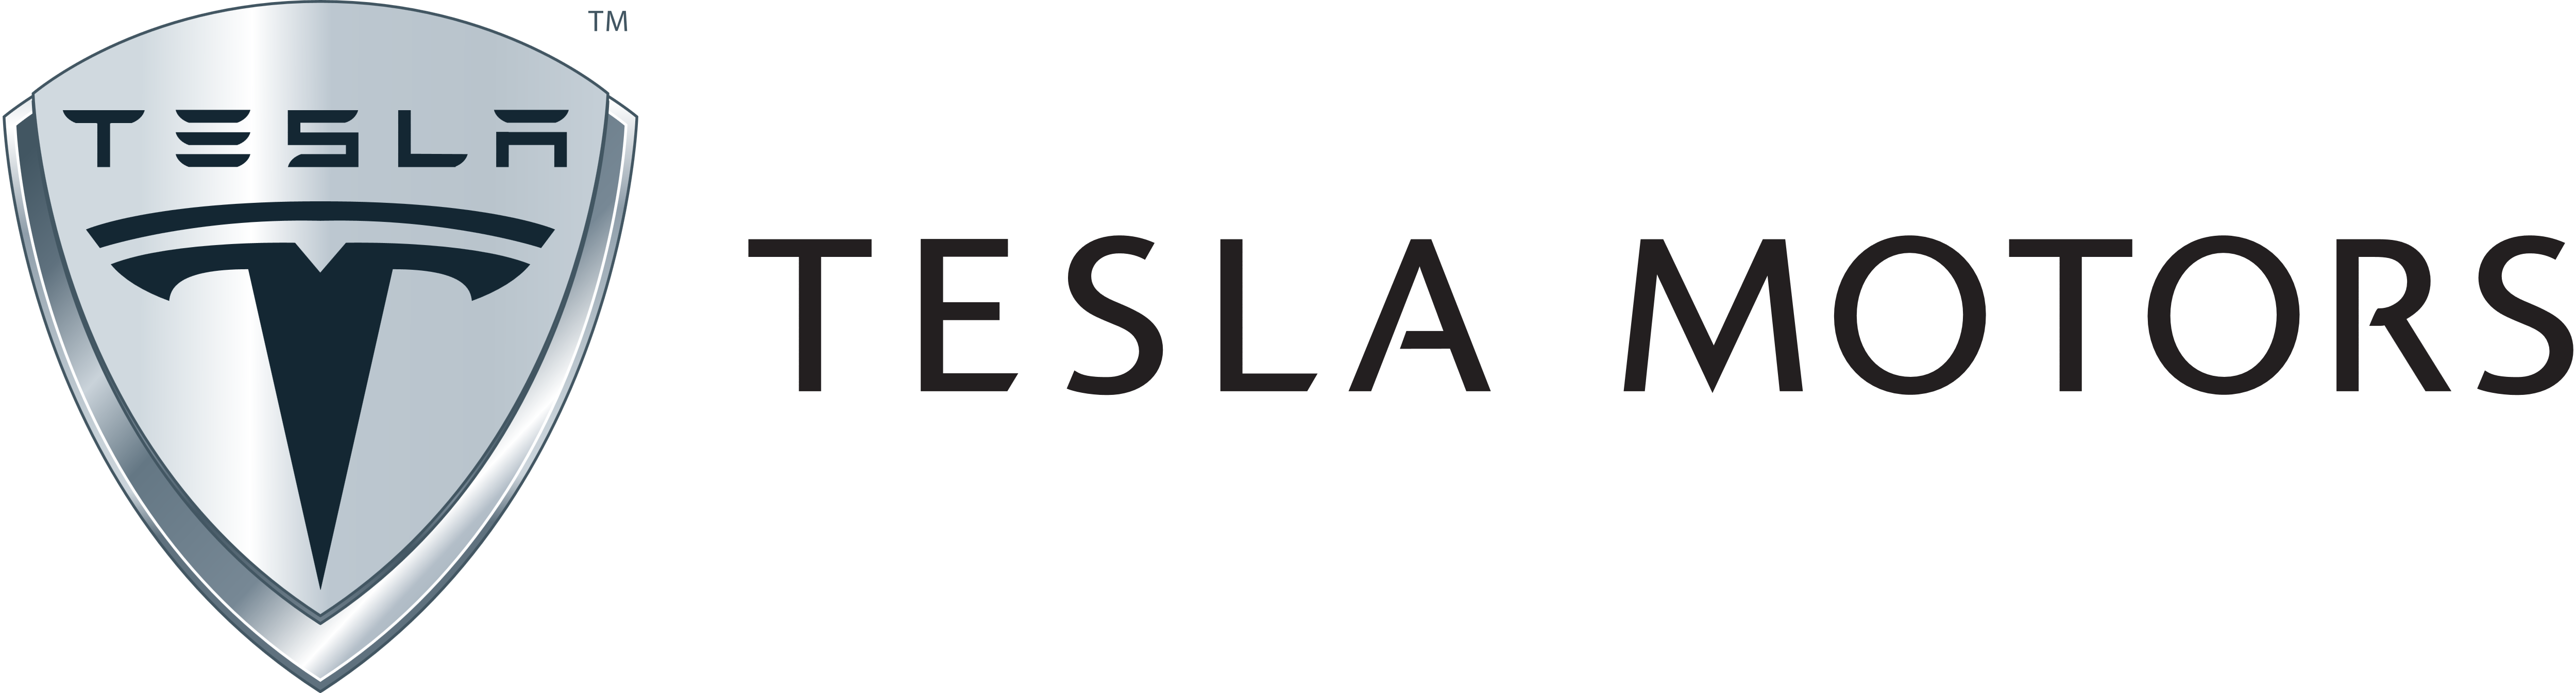 Tesla Motors Logos Download